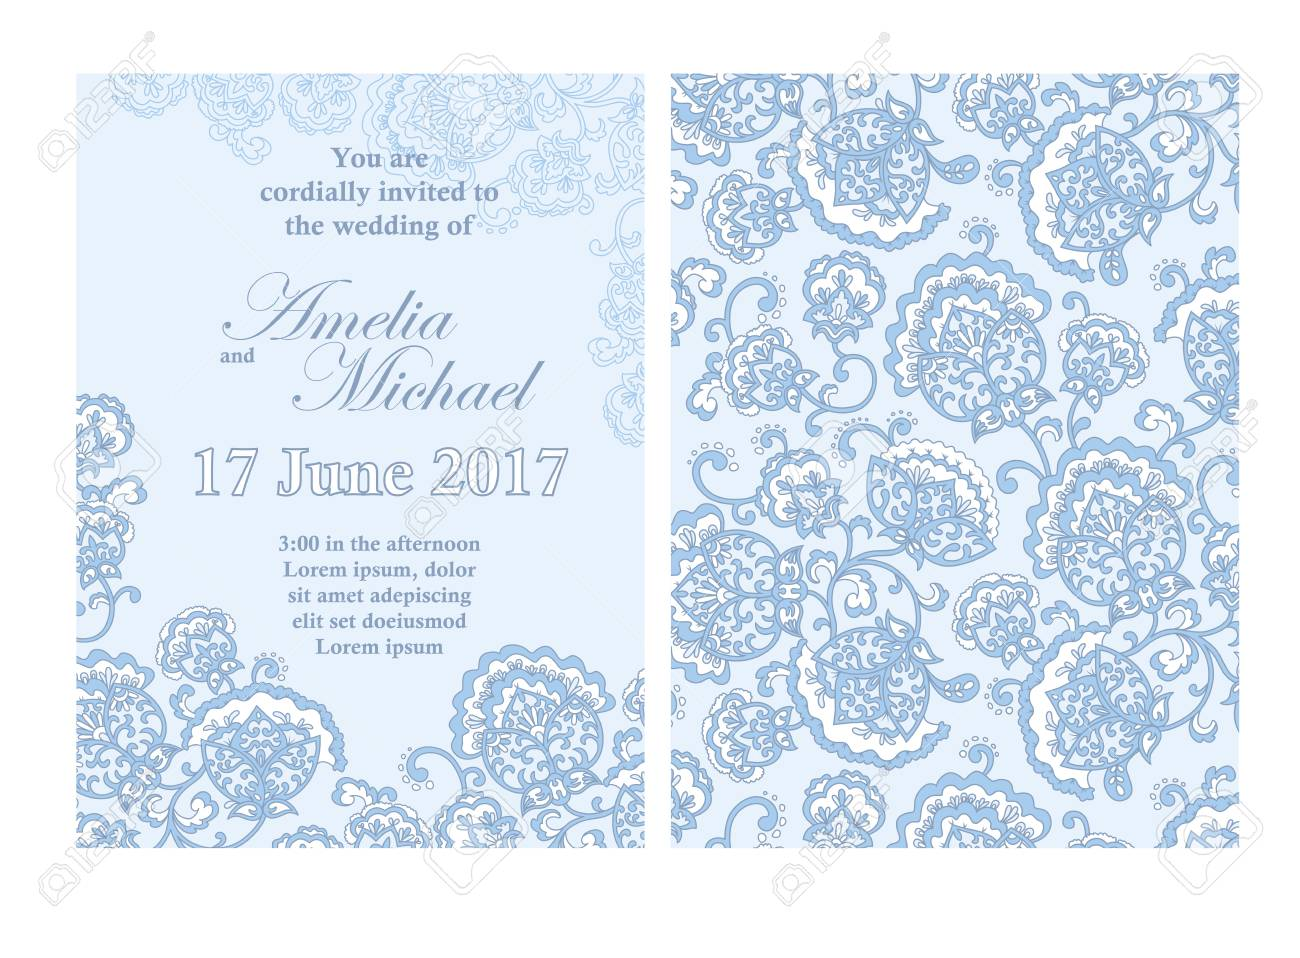 Elegant Wedding Invitation Card Template In Light Blue Colors